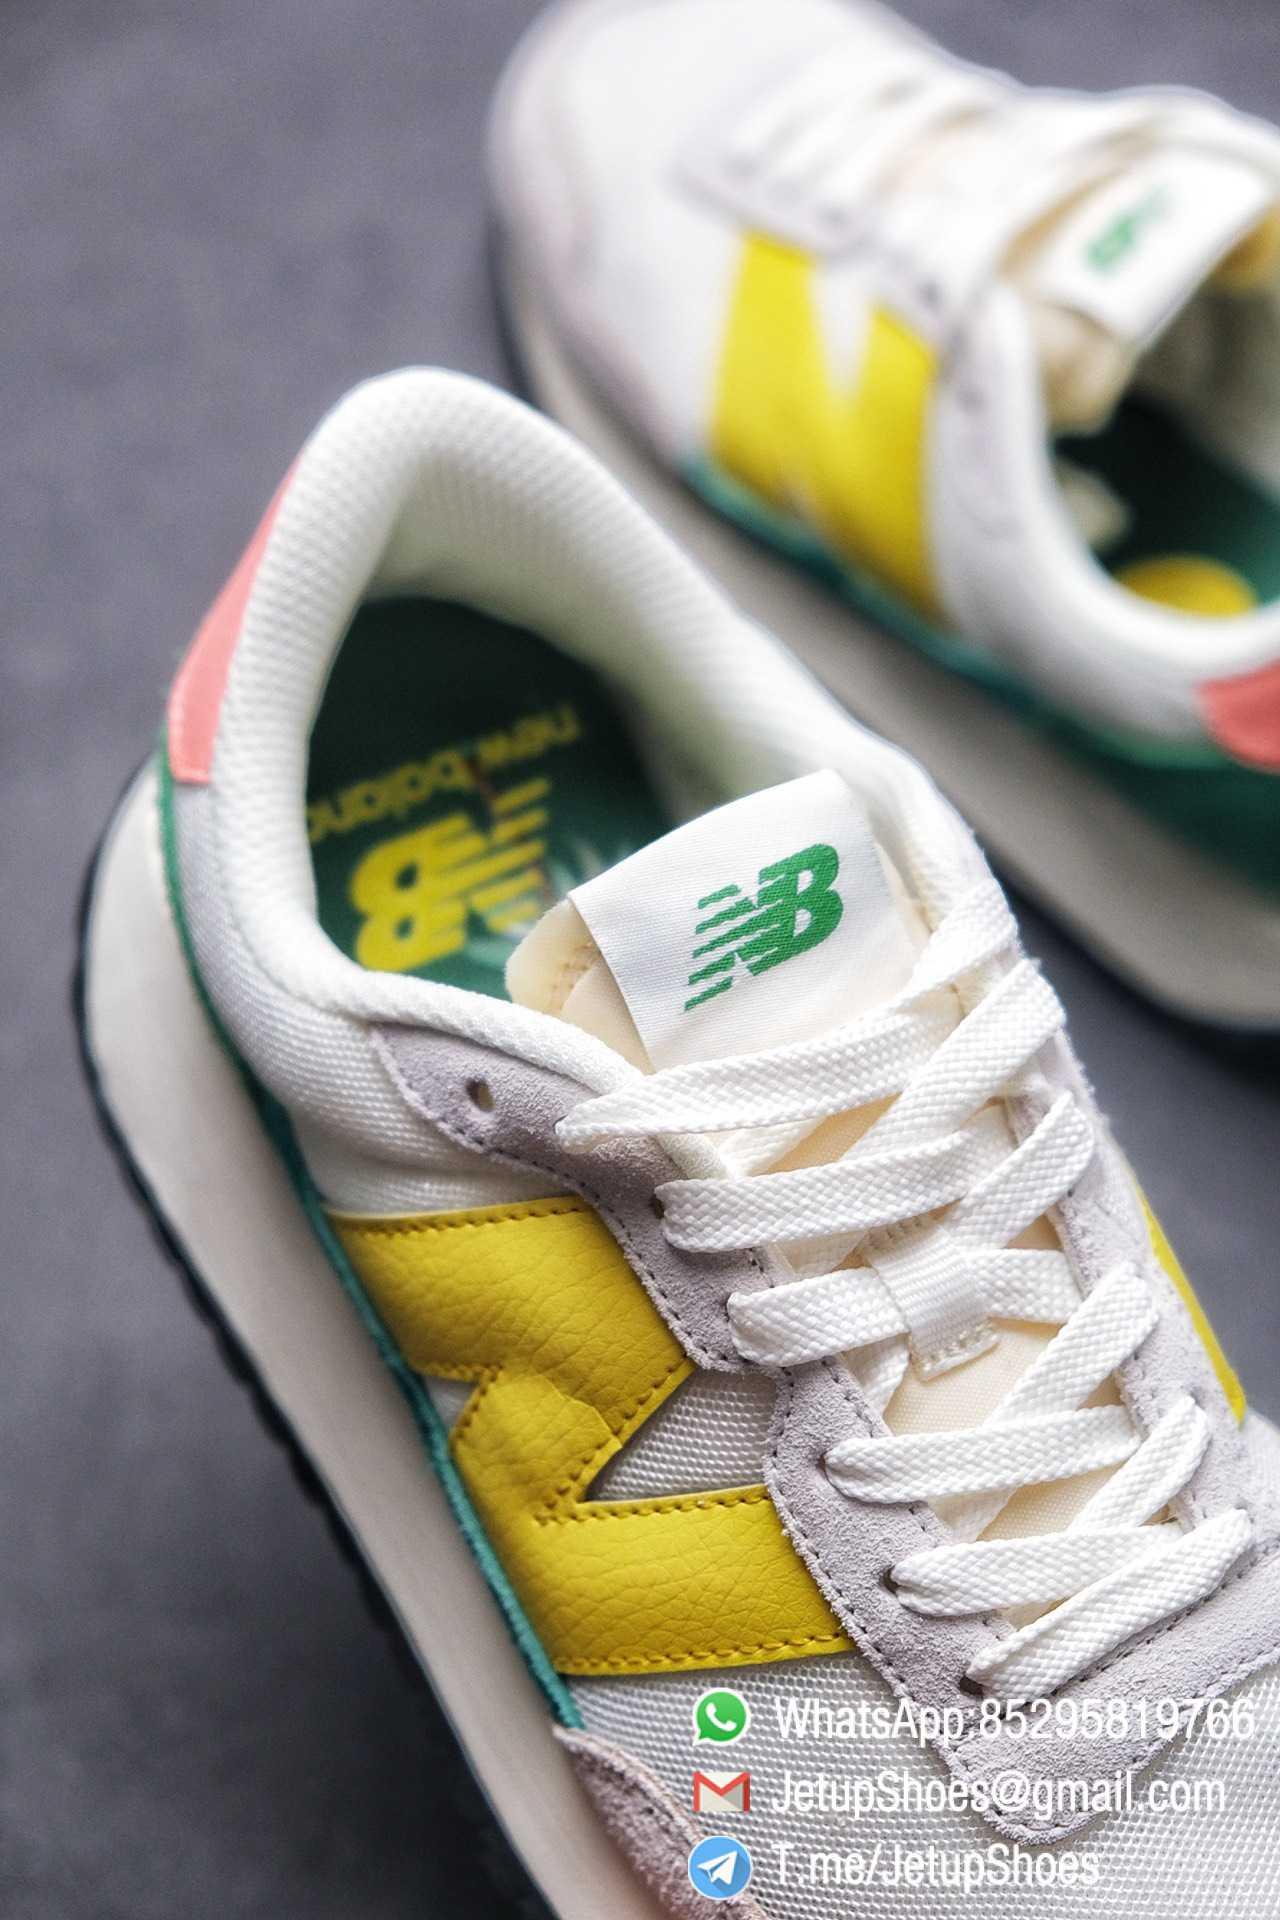 Best Replica New Balance 237 Light Grey Yellow Green Pink Multi Color SKU MS237AS1 High Quality Running Shoes 07